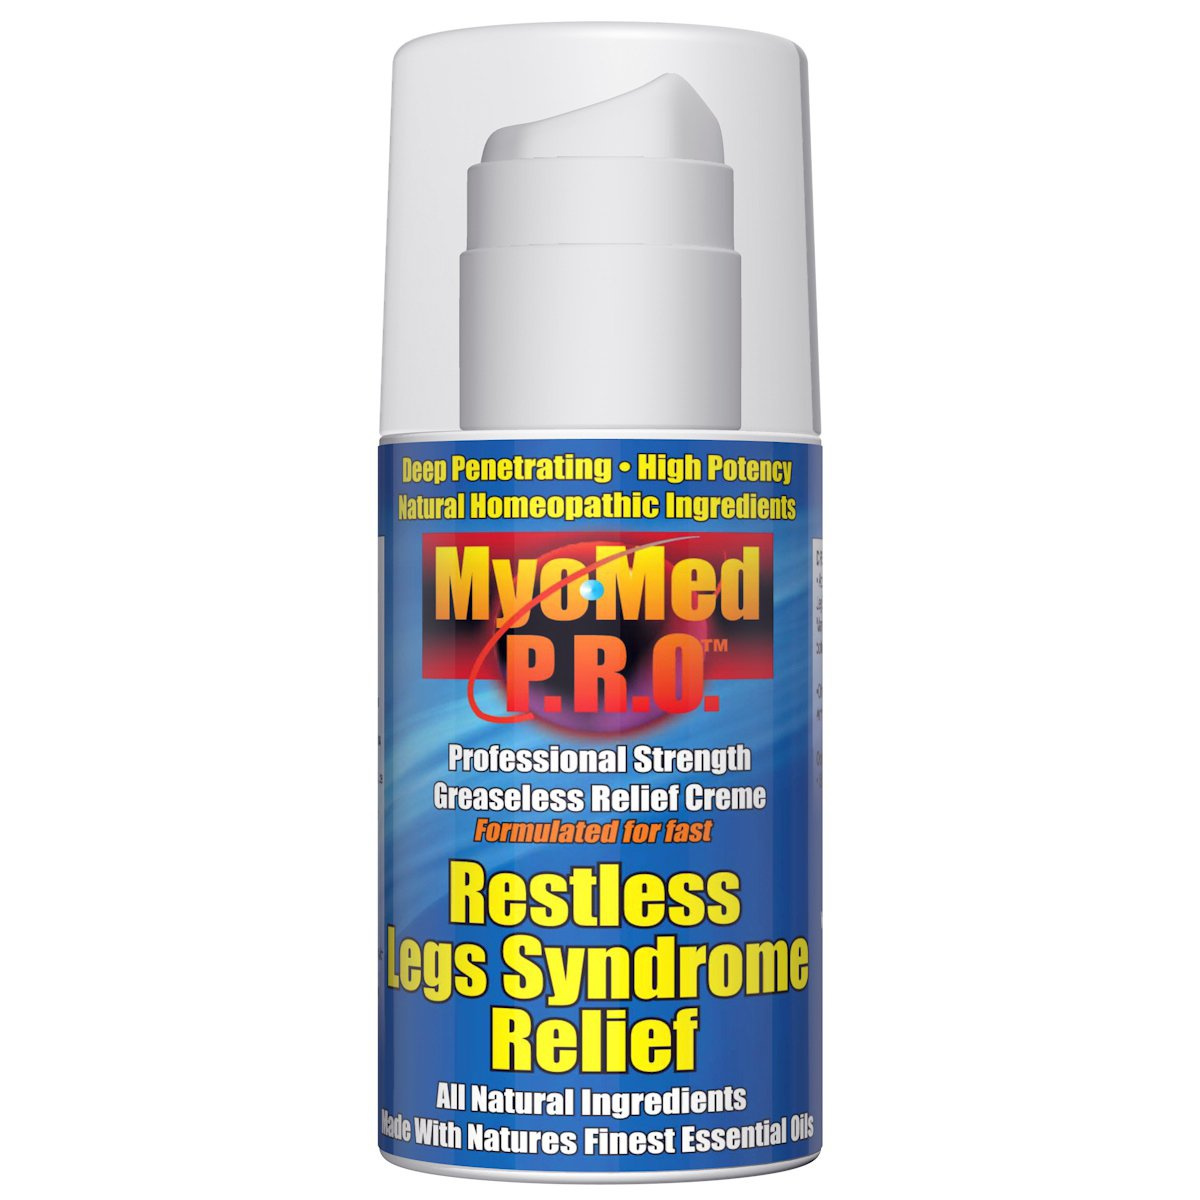 Best Restless Leg Syndrome Relief Cream by Myomed P.R.O. 3.5 oz. Professional Strength RLS Treatment & leg cramp relief will stop your symptoms fast. Finally, a restful legs remedy that works. by MyoMed P.R.O.